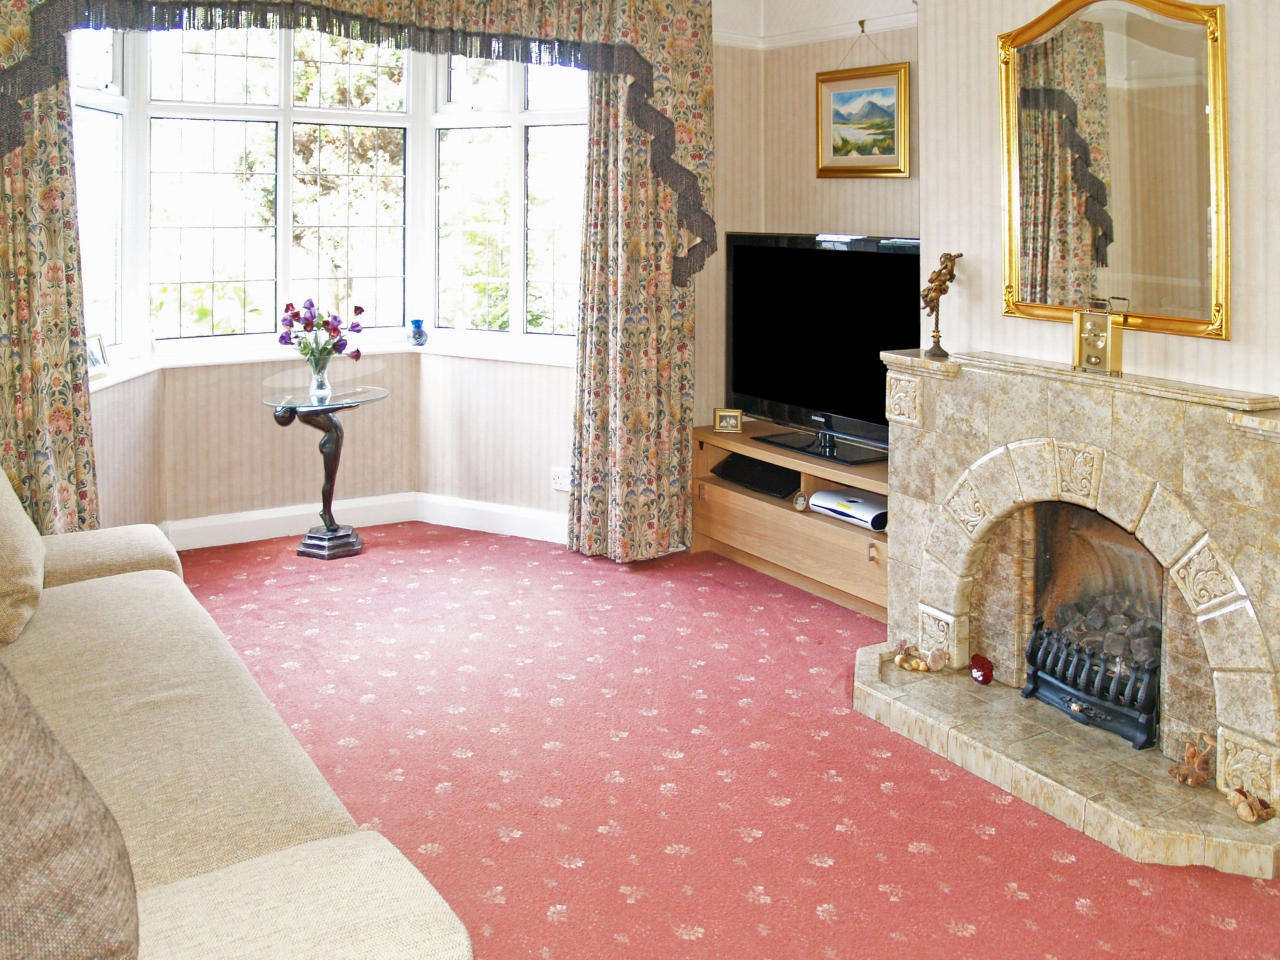 6 bedroom semi detached house SSTC in Solihull - photograph 7.